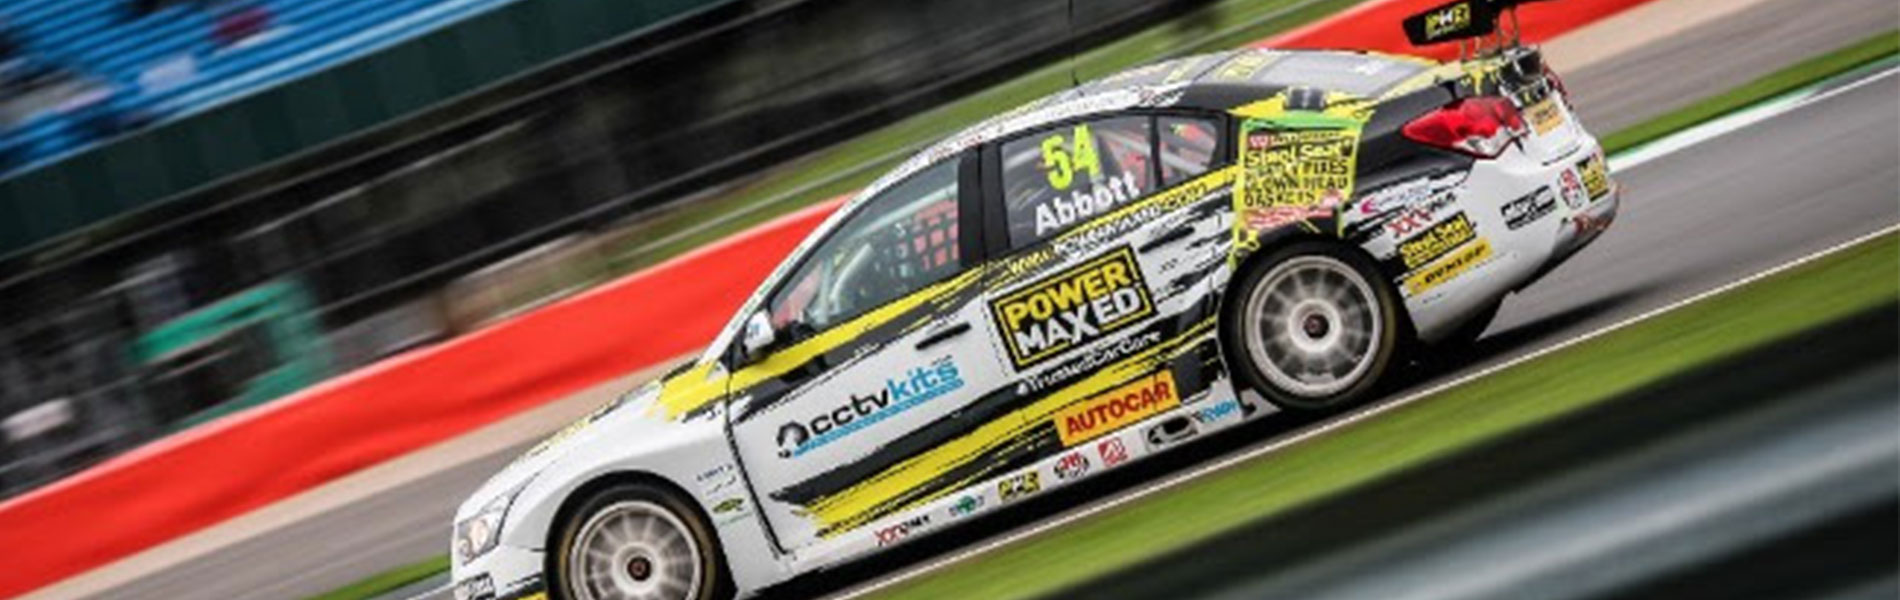 3-points-finishes-and-lots-of-pace-at-silverstone-motorsportdays-track-days-1